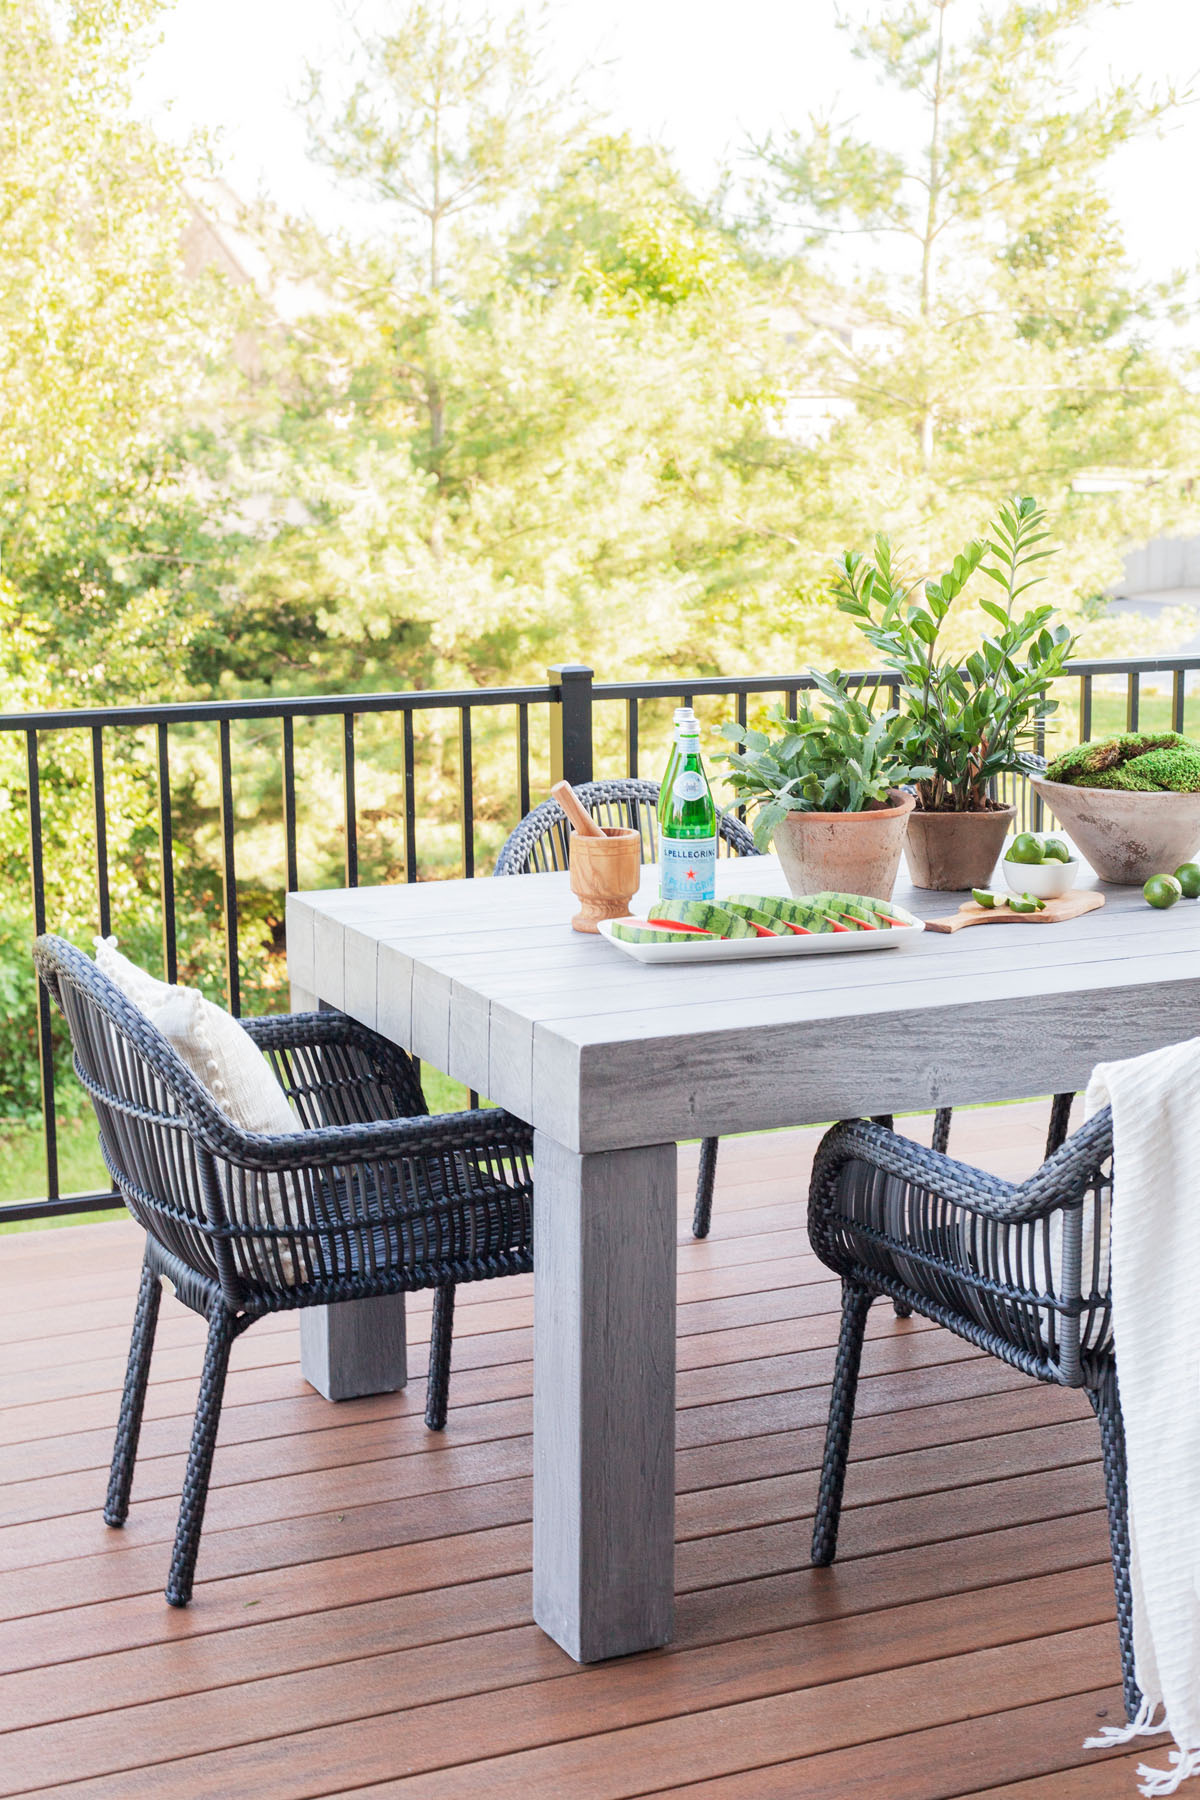 Shop the Look  |  Sonora Outdoor Dining Table ,  Canaveral Cape Dining Arm Chair .